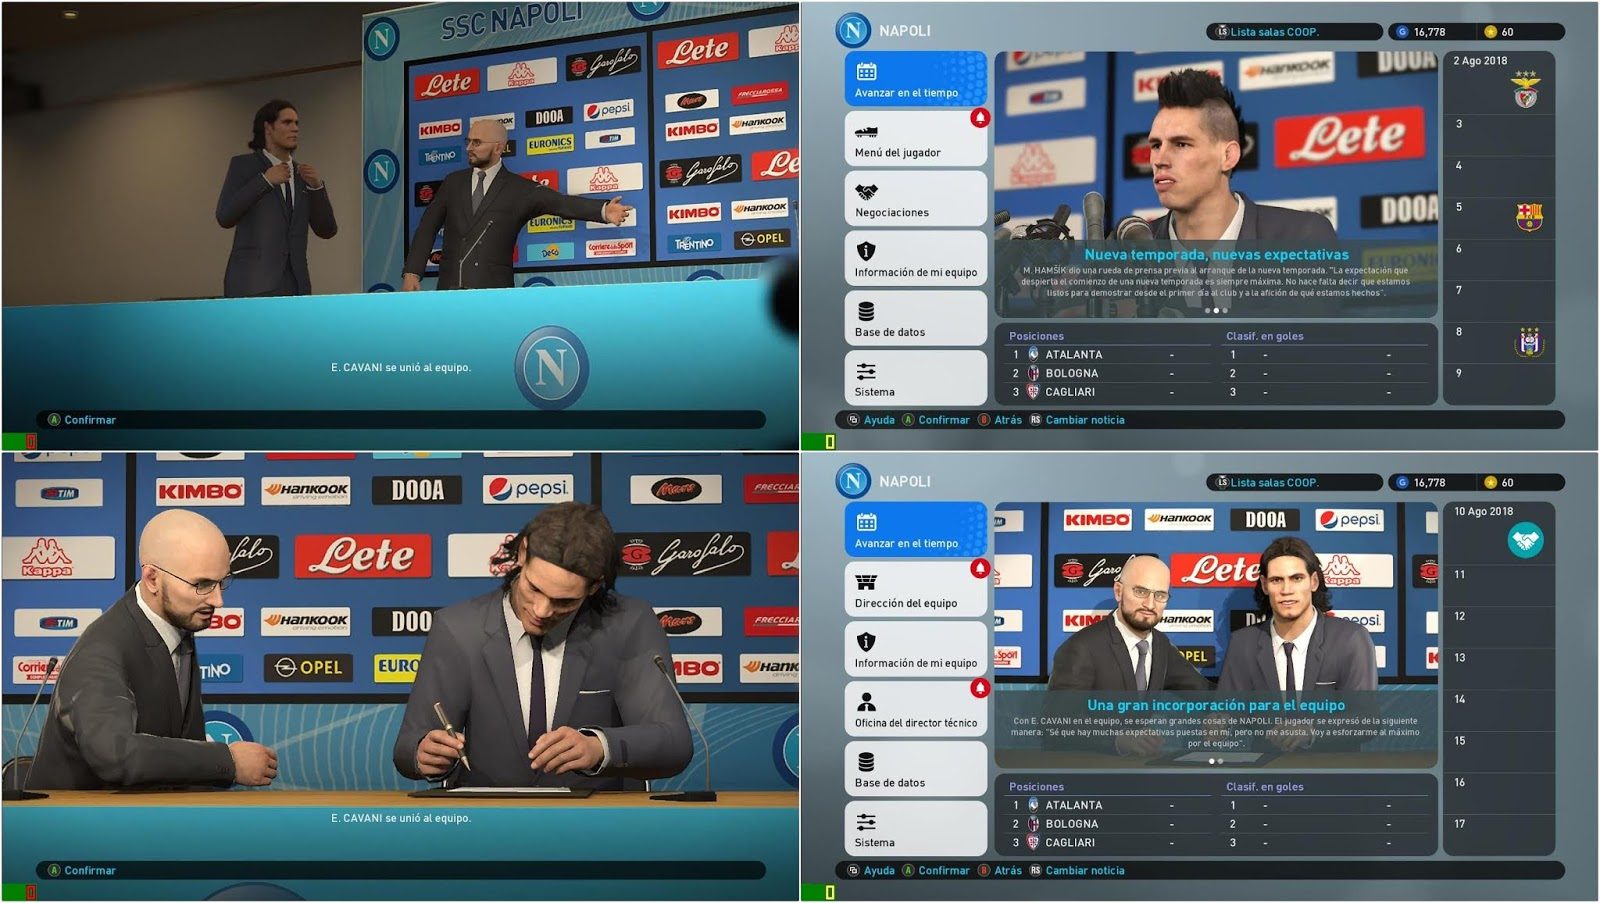 PES 2019 SSC Napoli Press Room by Ivankr Pulquero